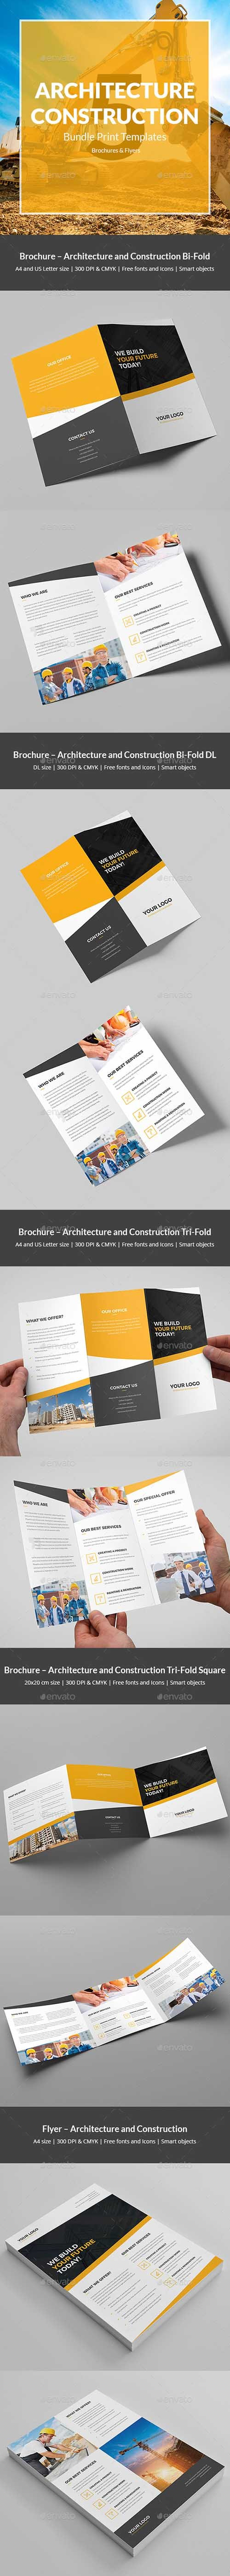 Architecture and Construction – Bundle Print Templates 5 in 1 21330460